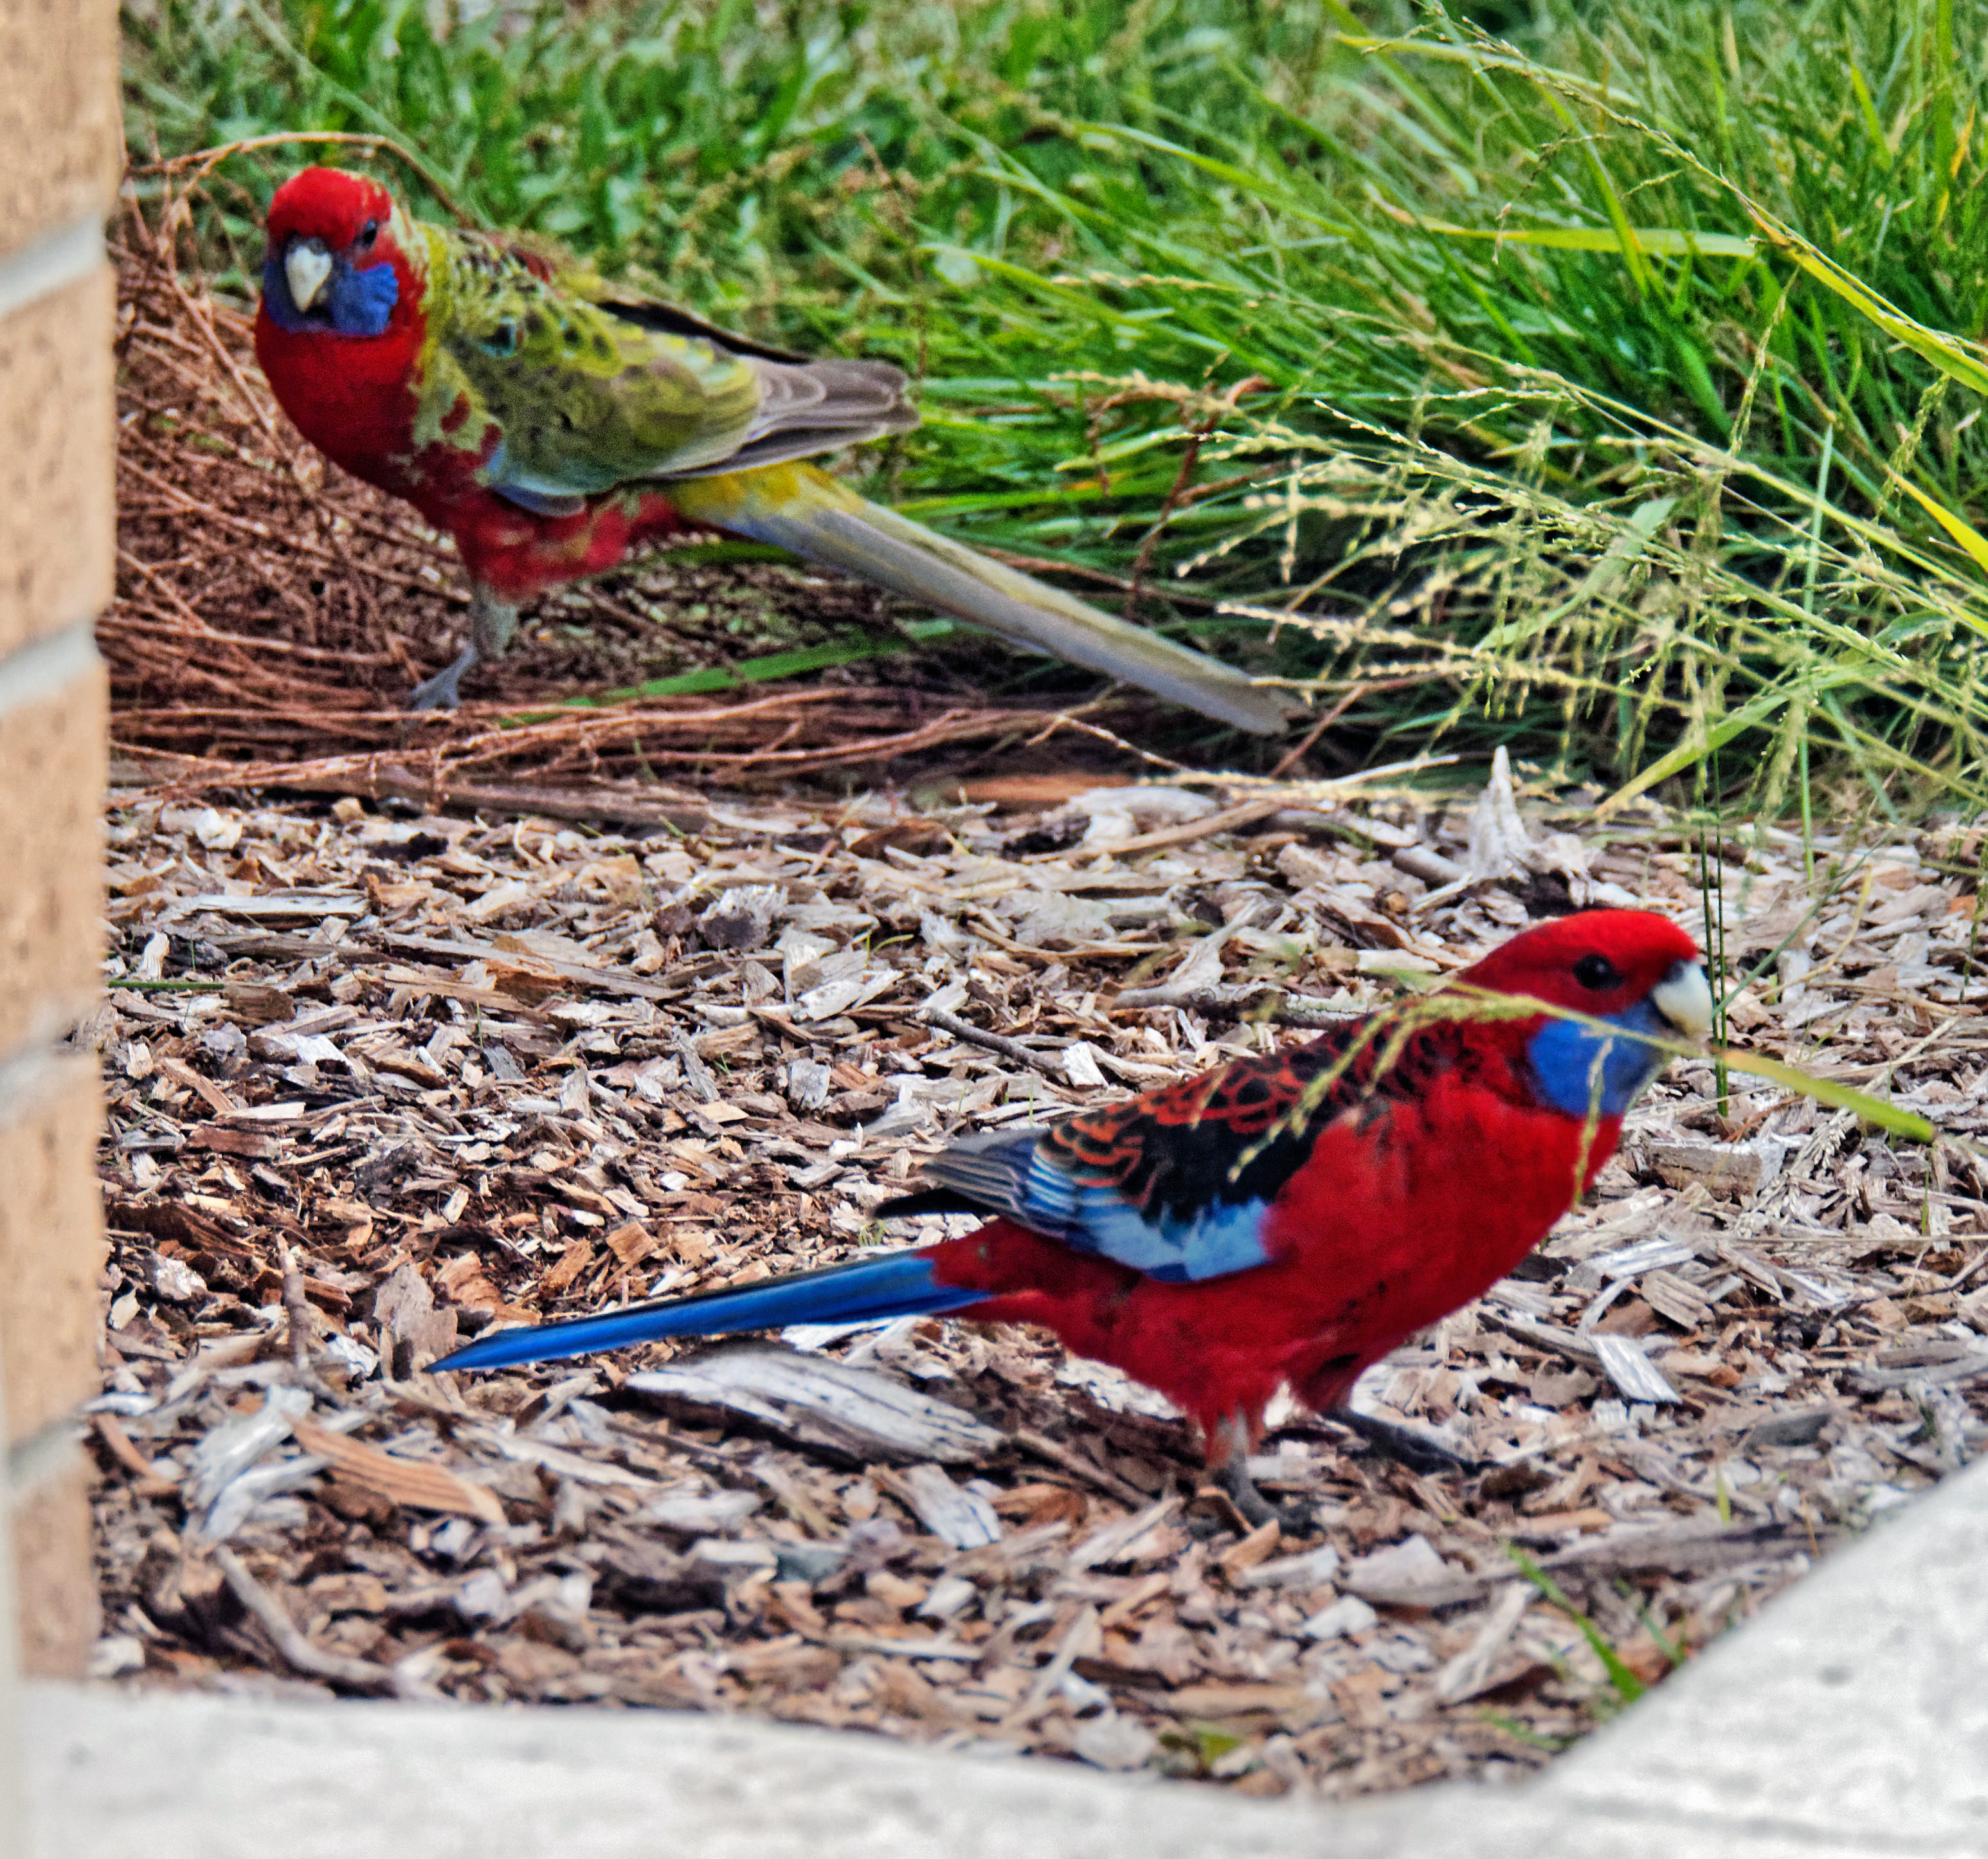 This should be Rosella-1.jpeg.  Is it missing?